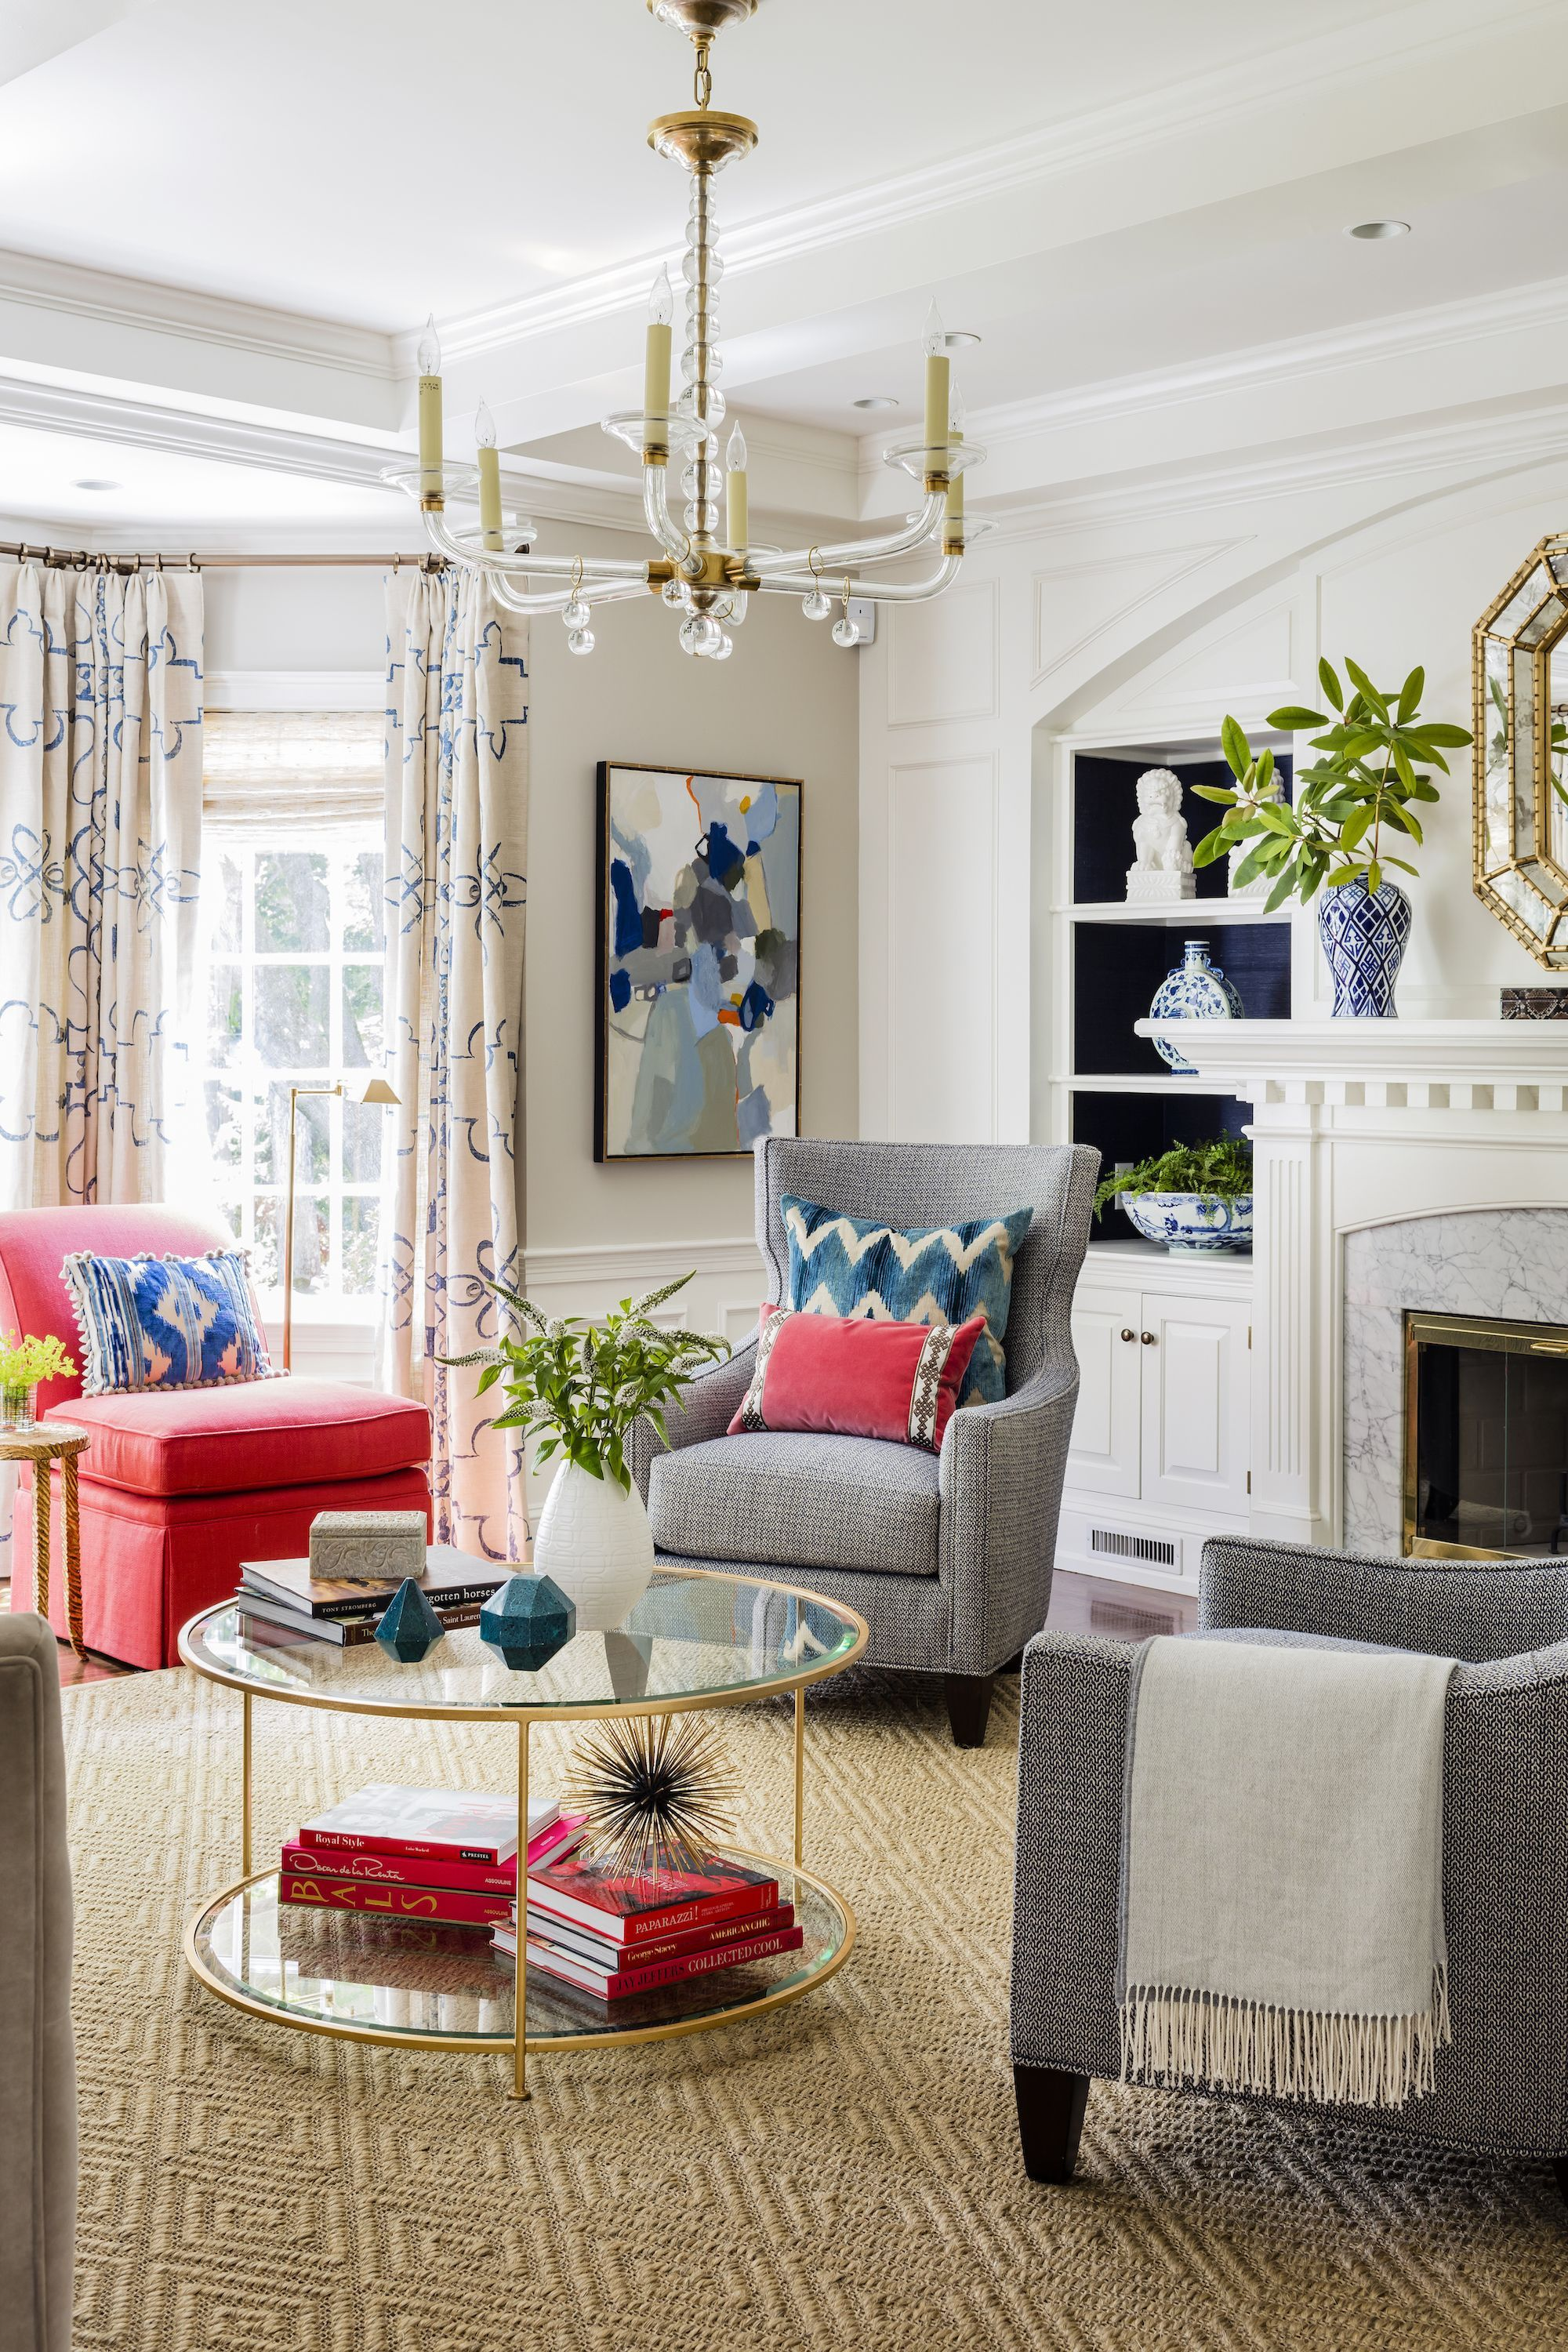 99 ideas for decorating your living room 2021 in 2020